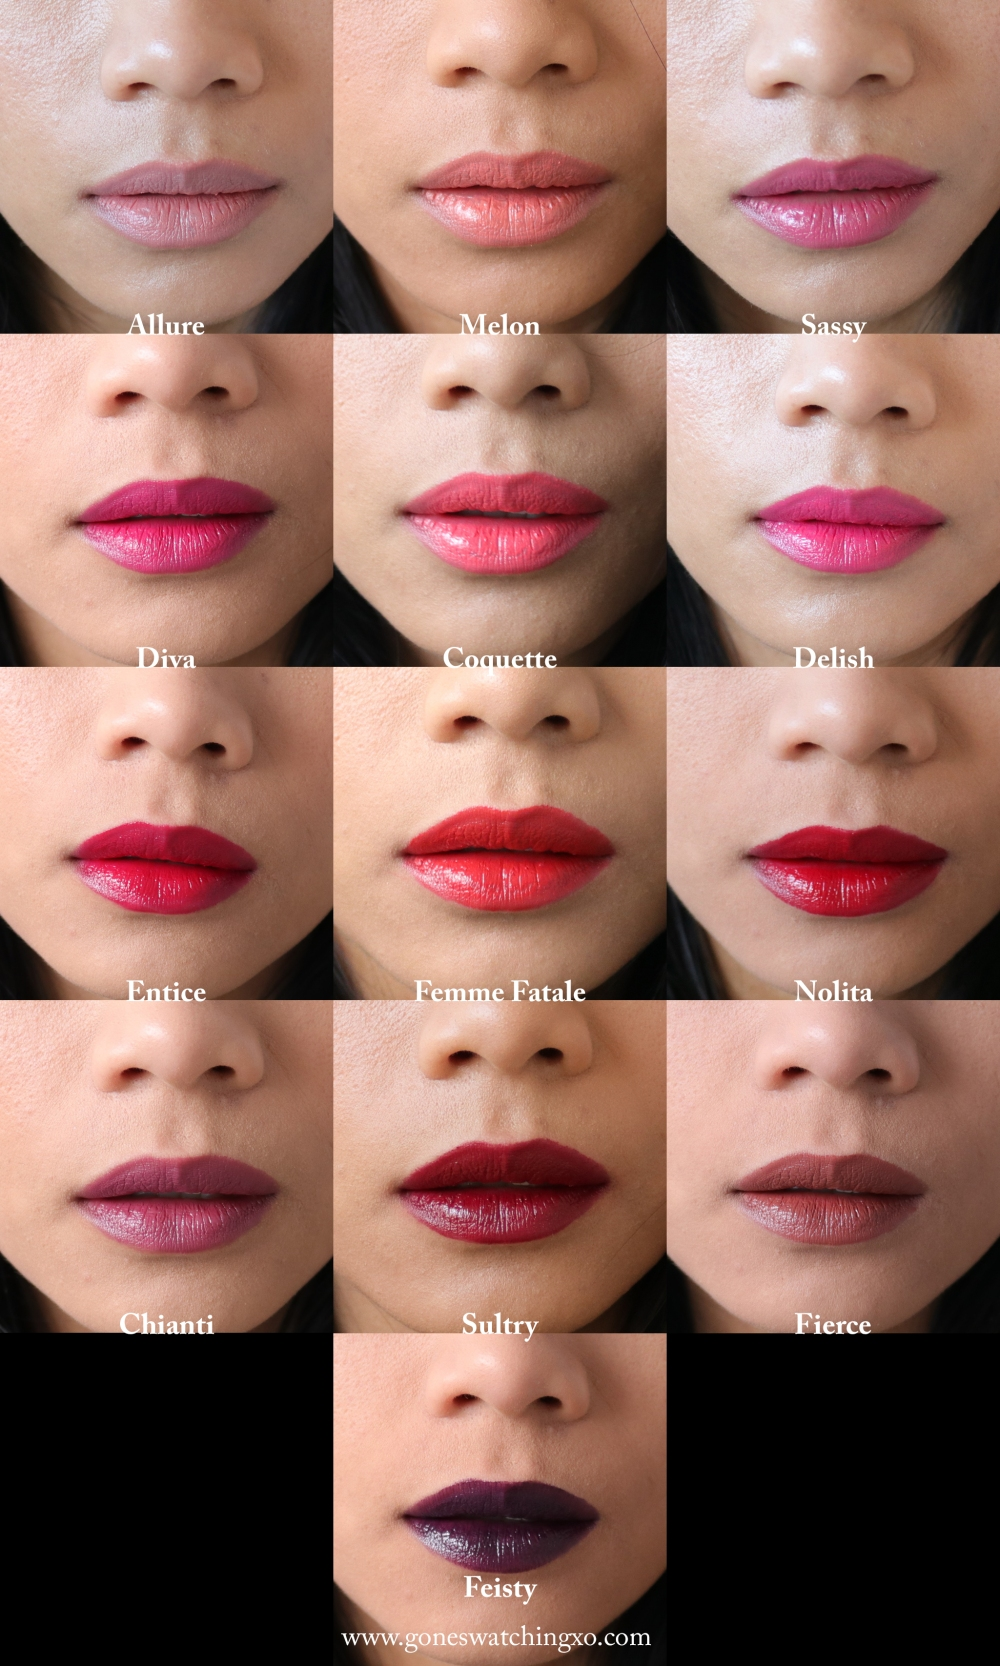 Nu Evolution Lipstick Swatches. Allure, Melon, Sassy, Diva, Coquette, Delish, Entice, Femme Fatale, Nolita, Chianti, Sultry, Fierce & Feisty. Blogger Gone Swatching xo